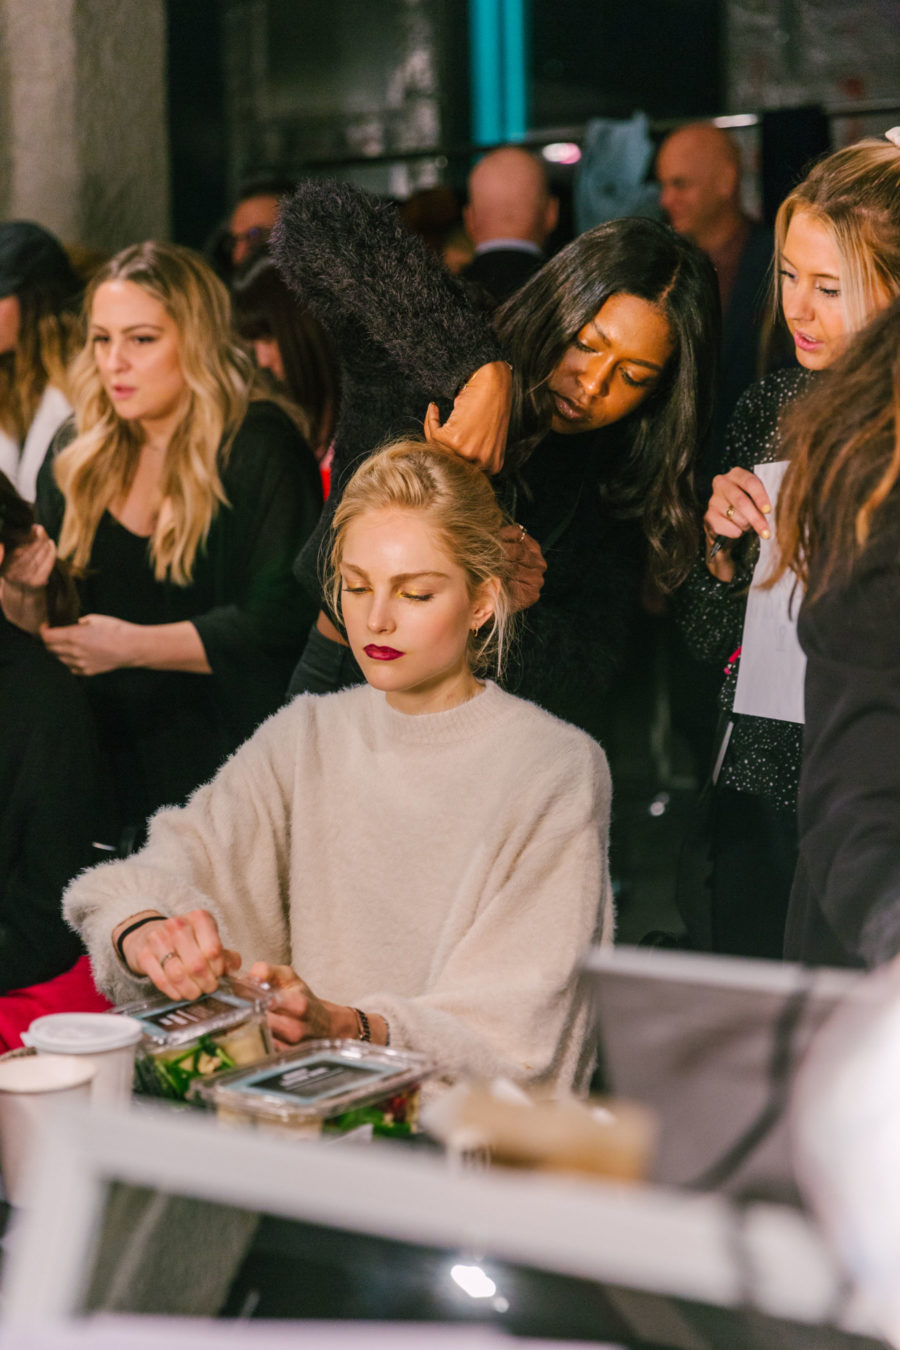 how to prepare for nyfw, how to prepare for fashion week, nyfw backstage // Notjessfashion.com